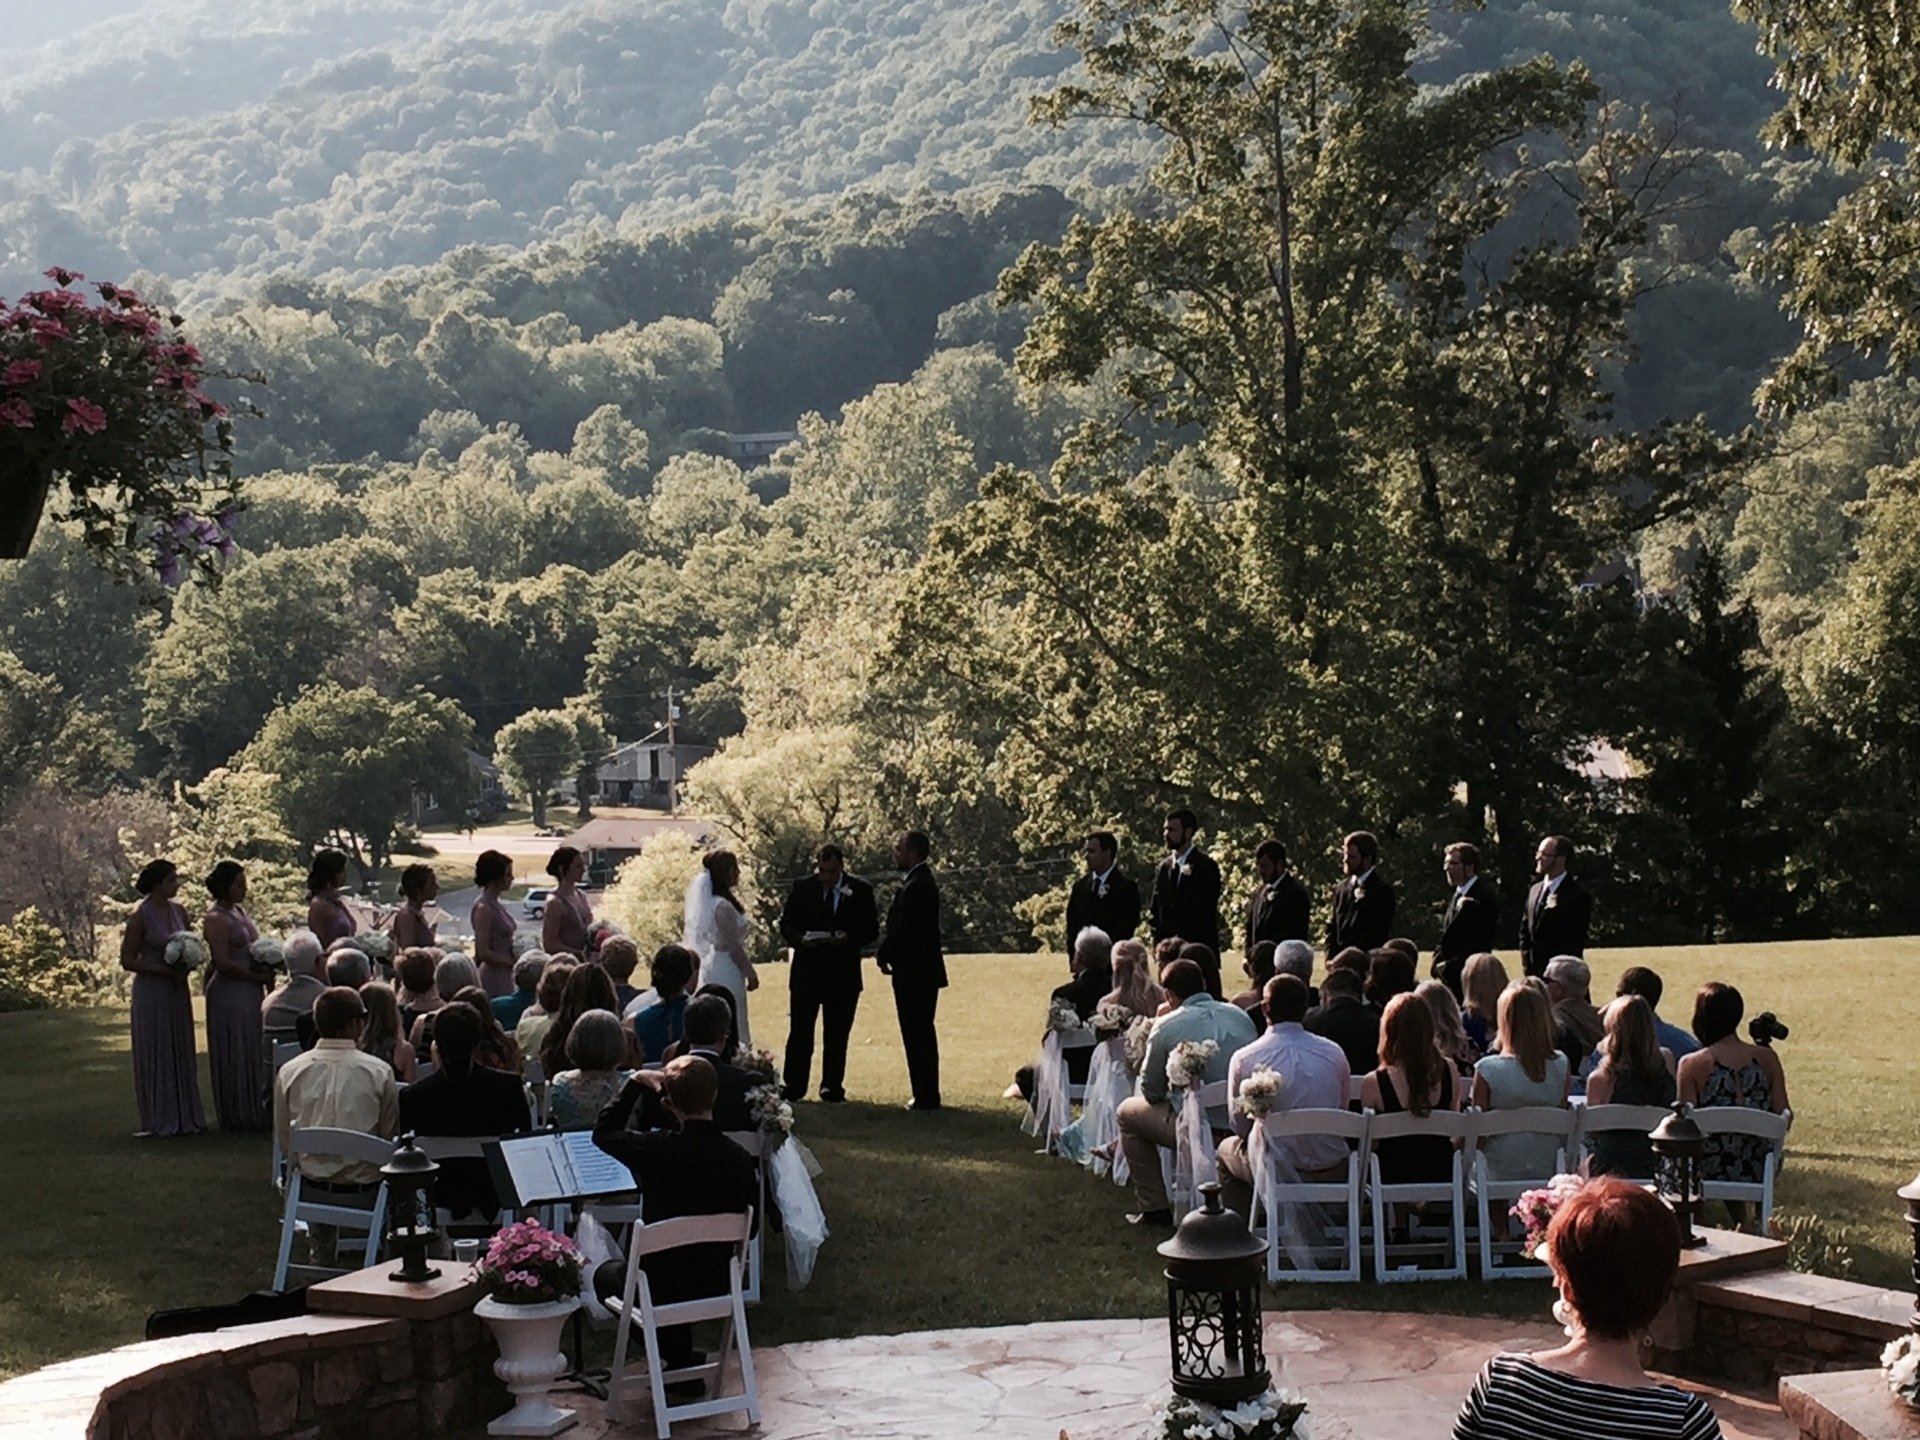 Enjoy an outdoor ceremony with your friends and family